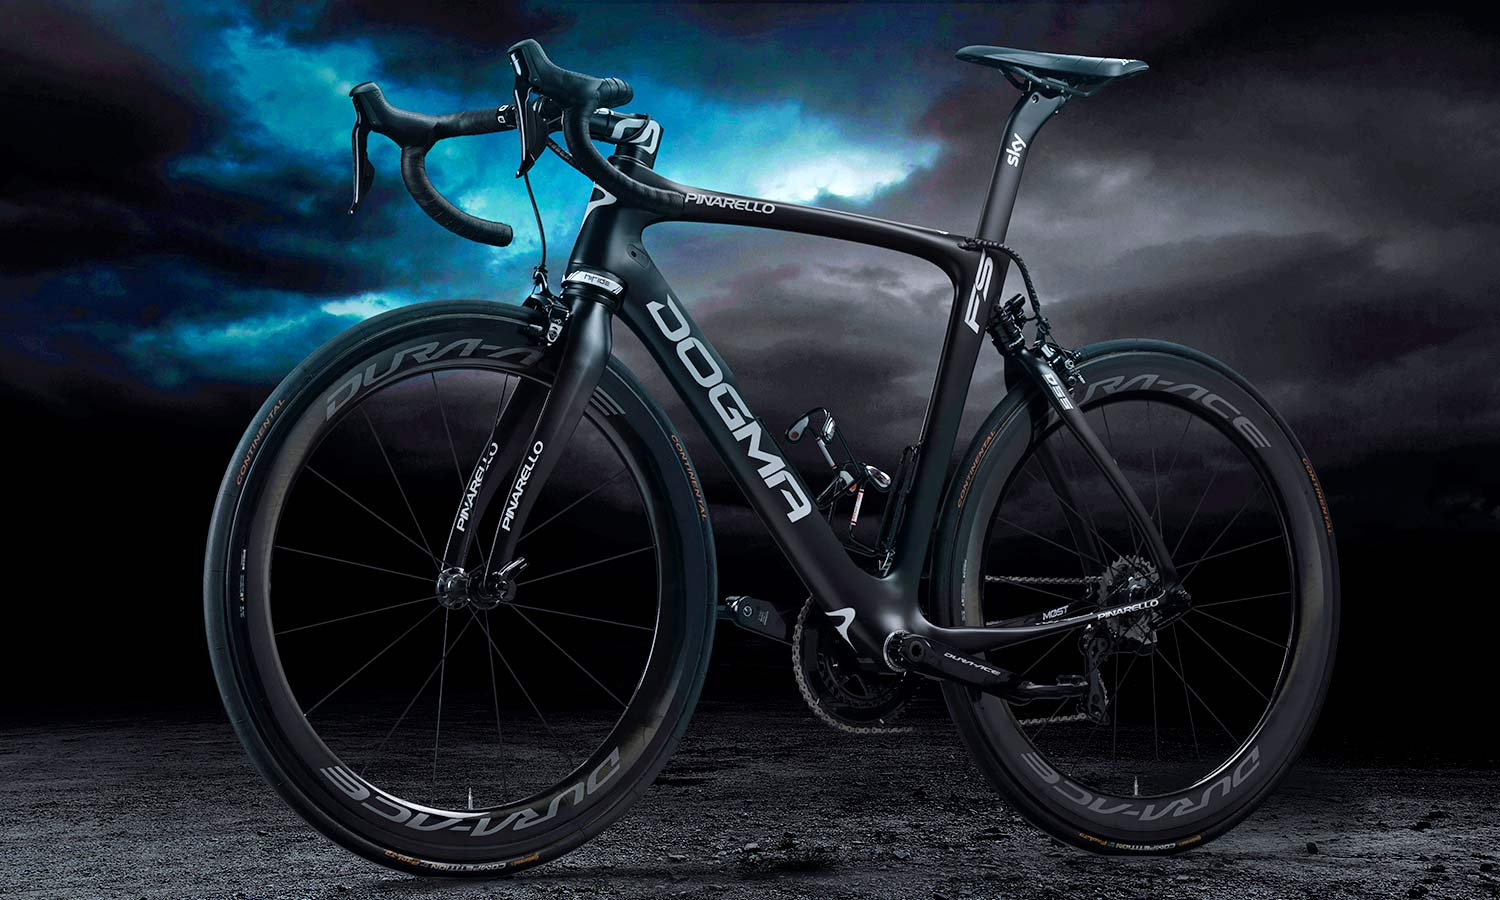 https://bikerumor.com/2019/04/11/pinarello-dogma-fs-drops-in-electronically-controlled-ultralight-full-suspension-road-bike/